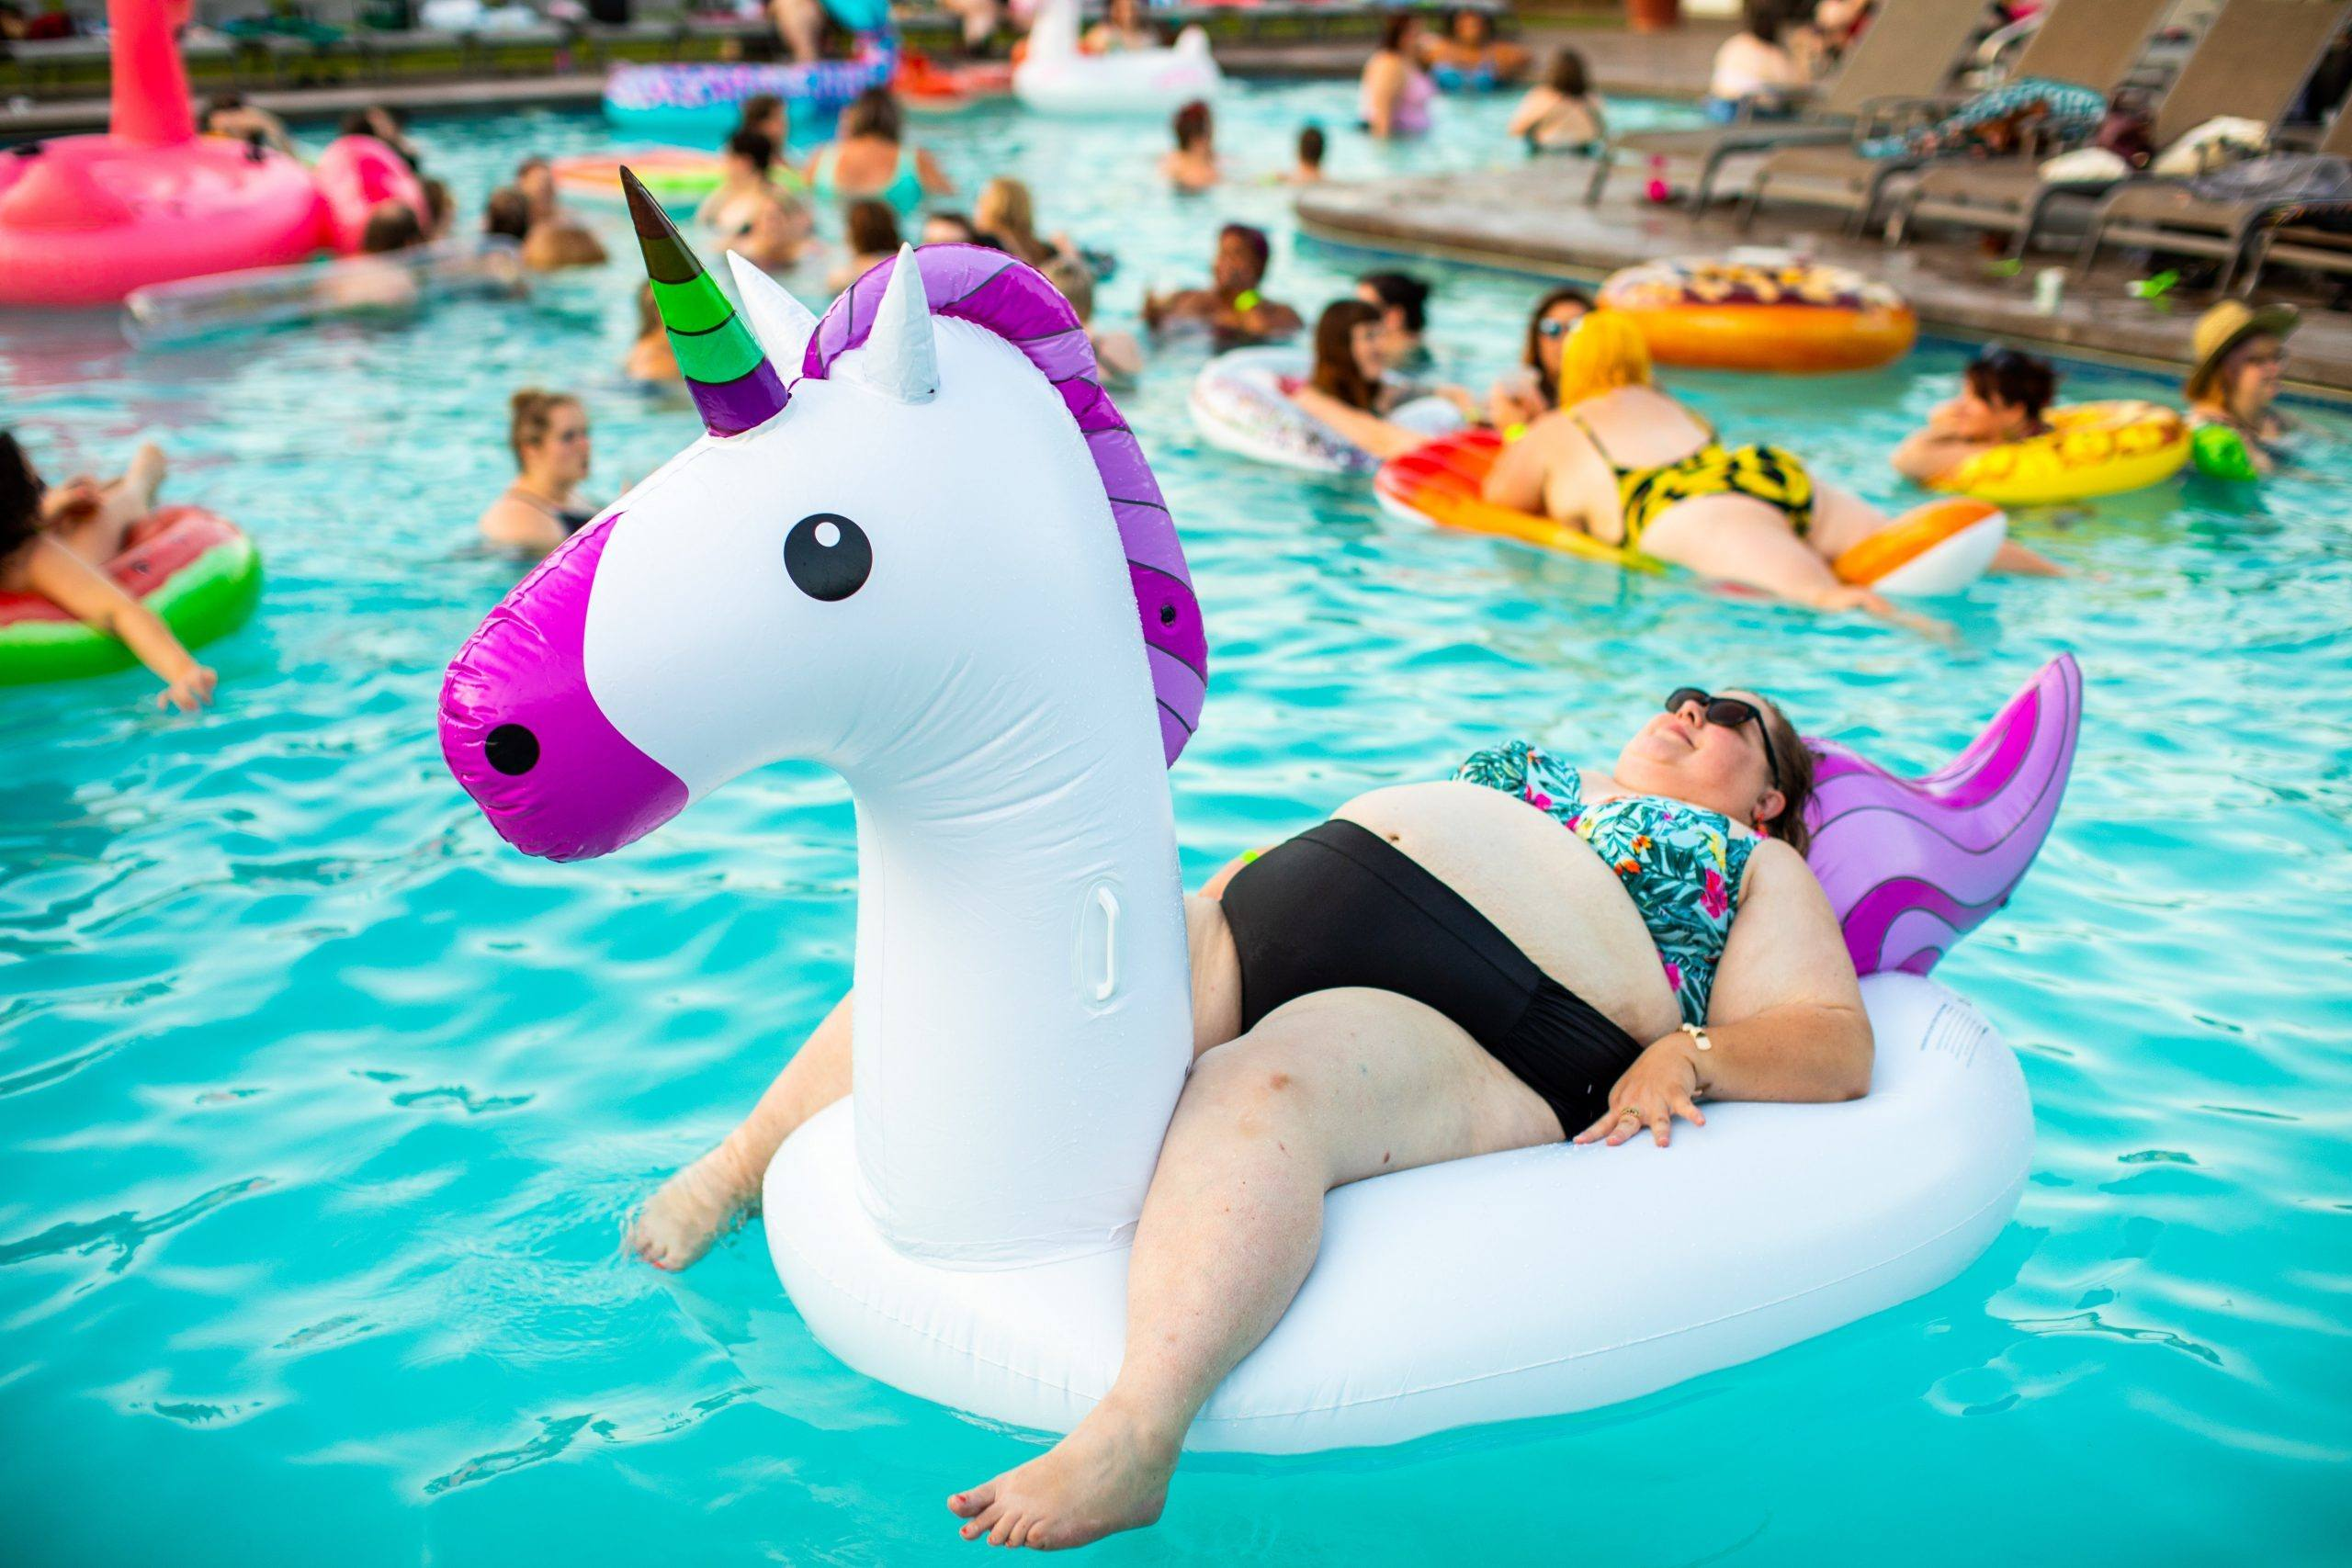 Image of woman in the pool concerning about obesity